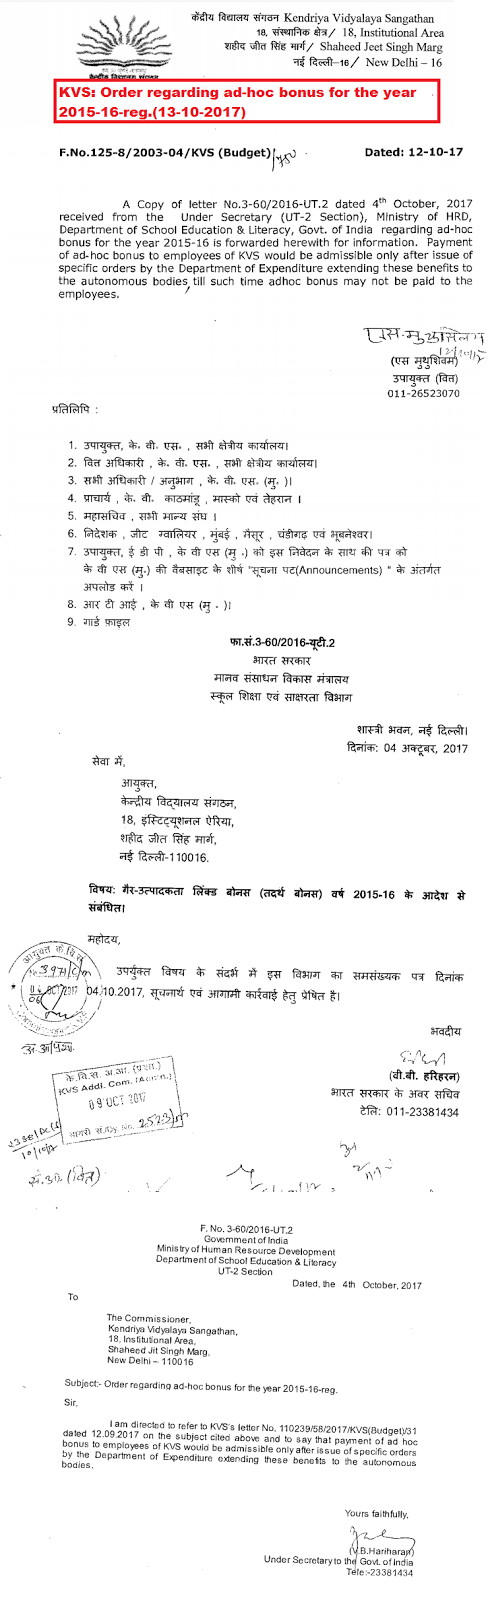 KVS-Clarification-dt-13-10-17-Ad-hoc-Bonus-2015-16-Order-dated-12-10-2017-paramnews